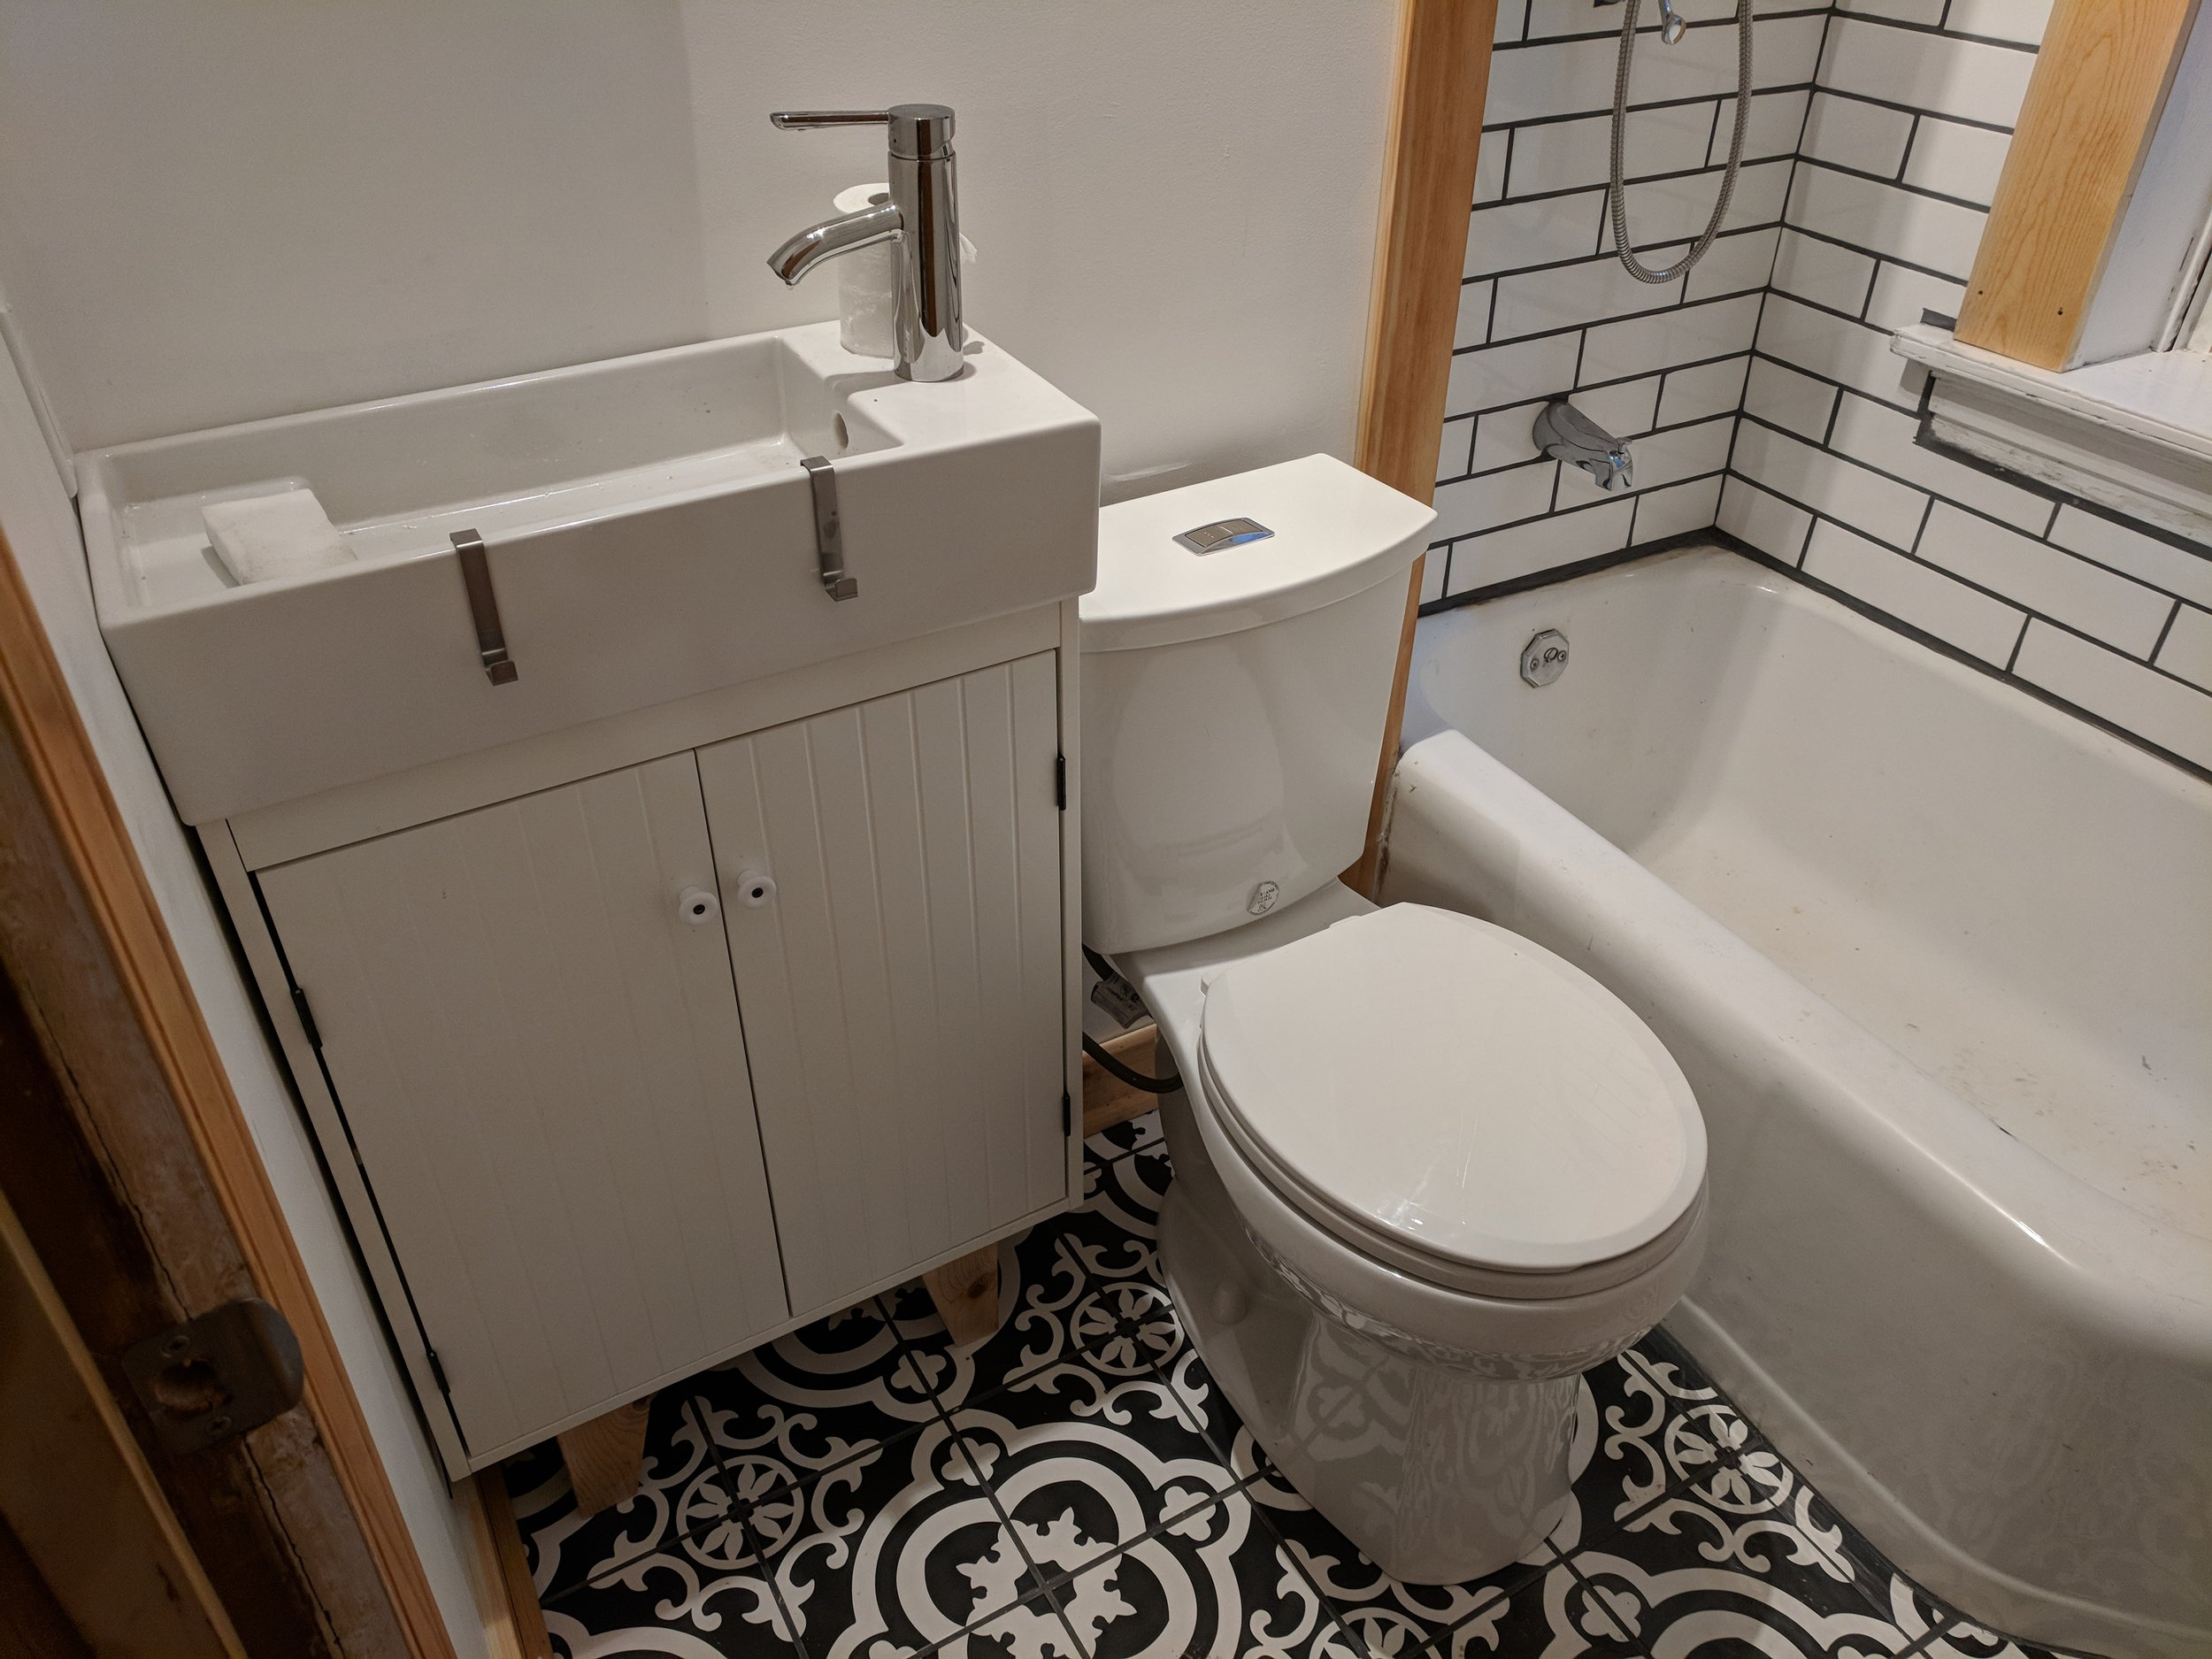 We completely remodeled this bathroom after it was destroyed in a fire in this South City home.  We did the drywall, tile flooring, tile shower surround, framed an exterior wall with custom shelving, and custom medicine cabinet.